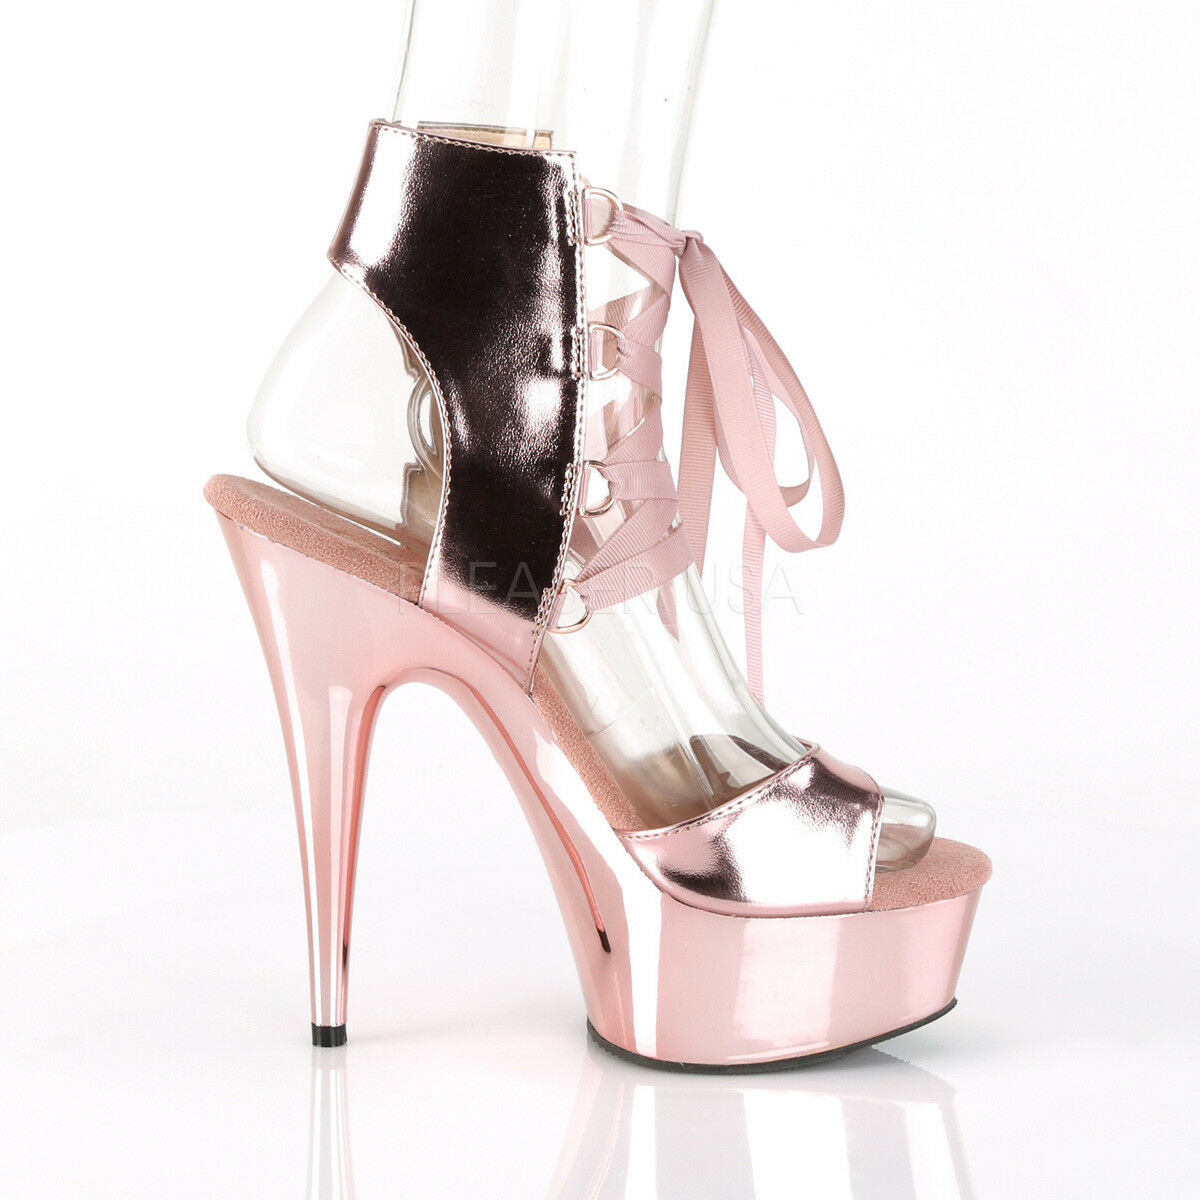 Delight 600-14 Lace Up 6  High Heel Rose or Platform Sandal chaussures